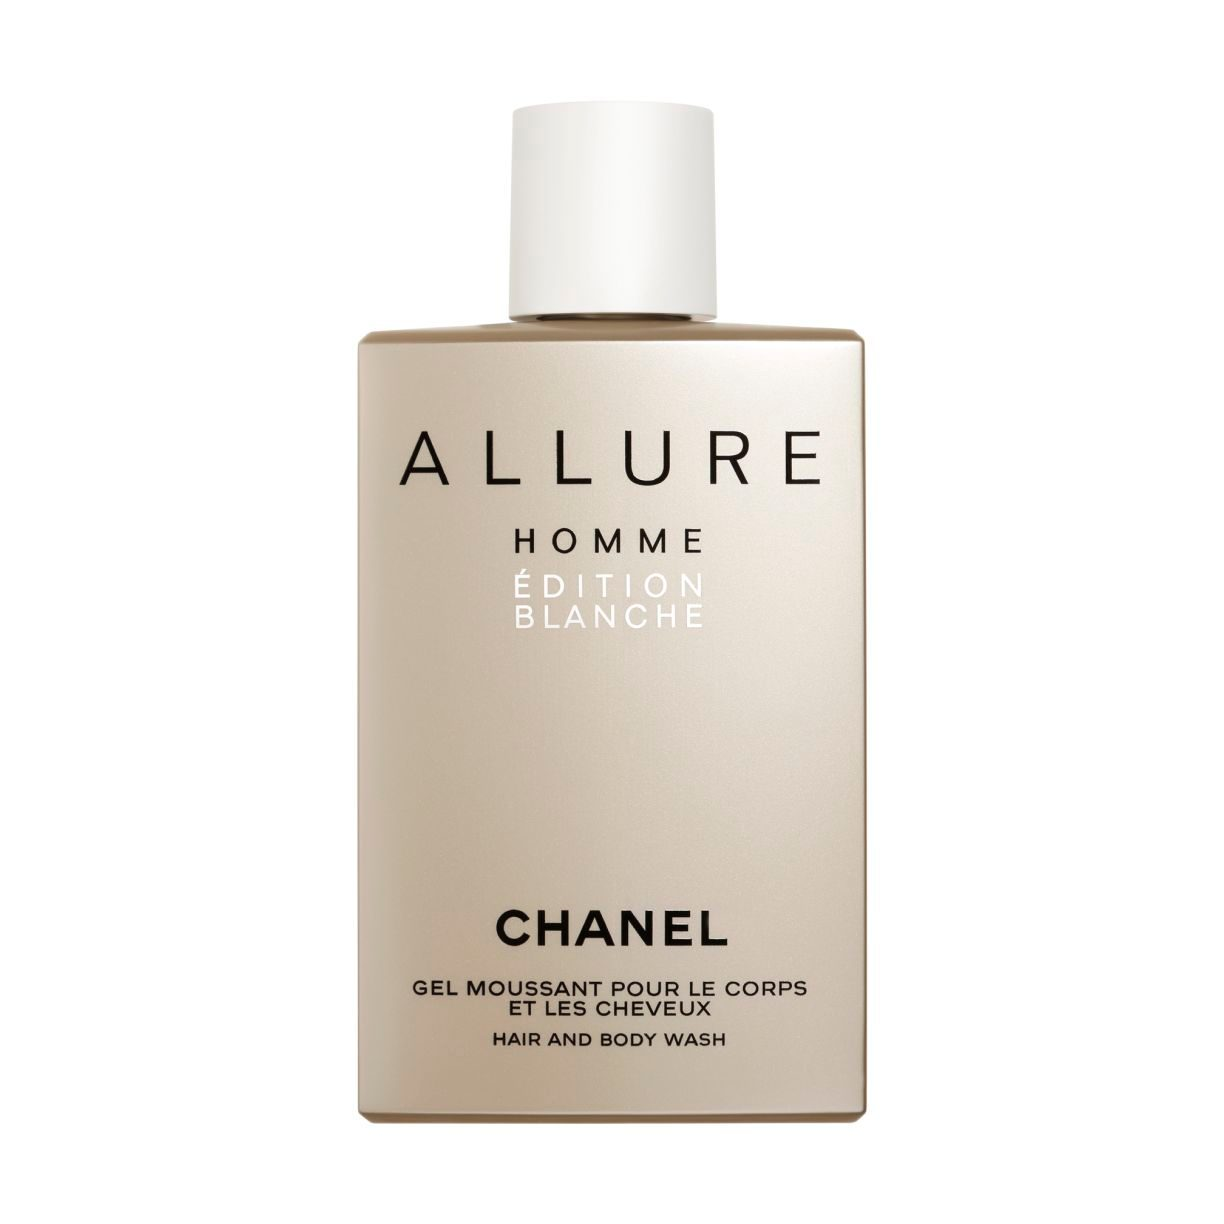 ALLURE HOMME ÉDITION BLANCHE HAIR AND BODY WASH